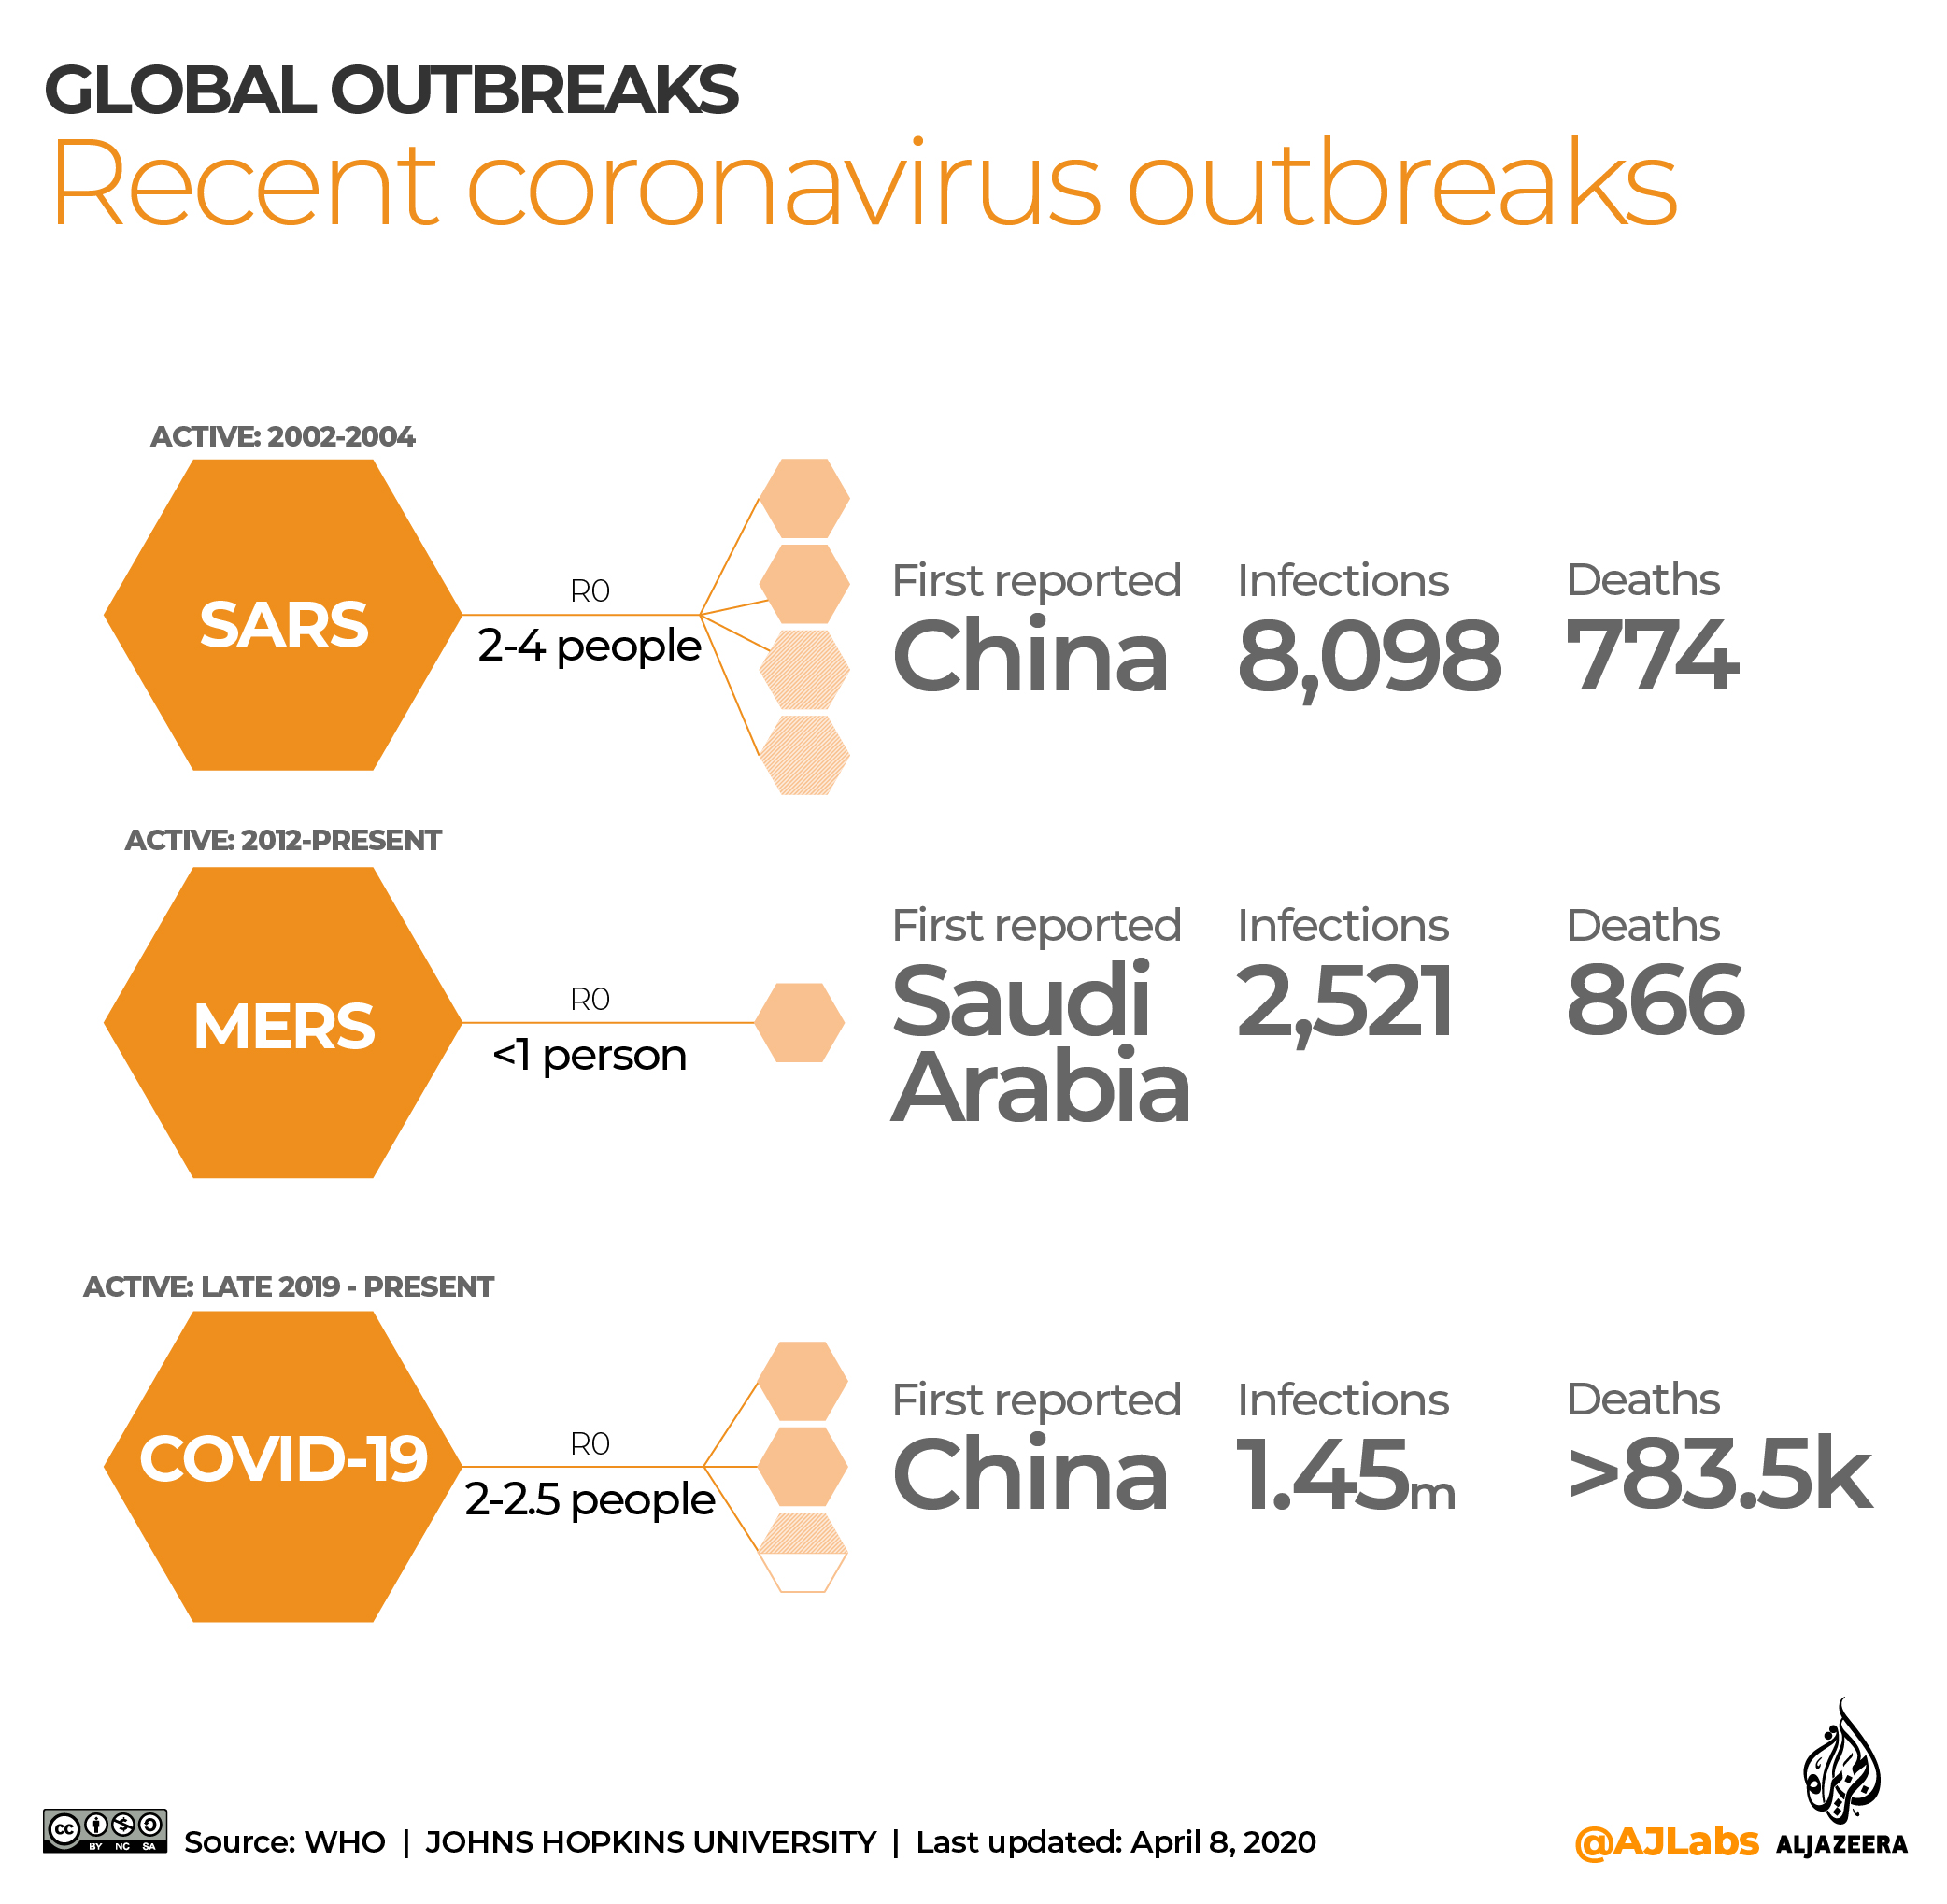 INTERACTIVE: Coronavirus outbreaks April 8 2020